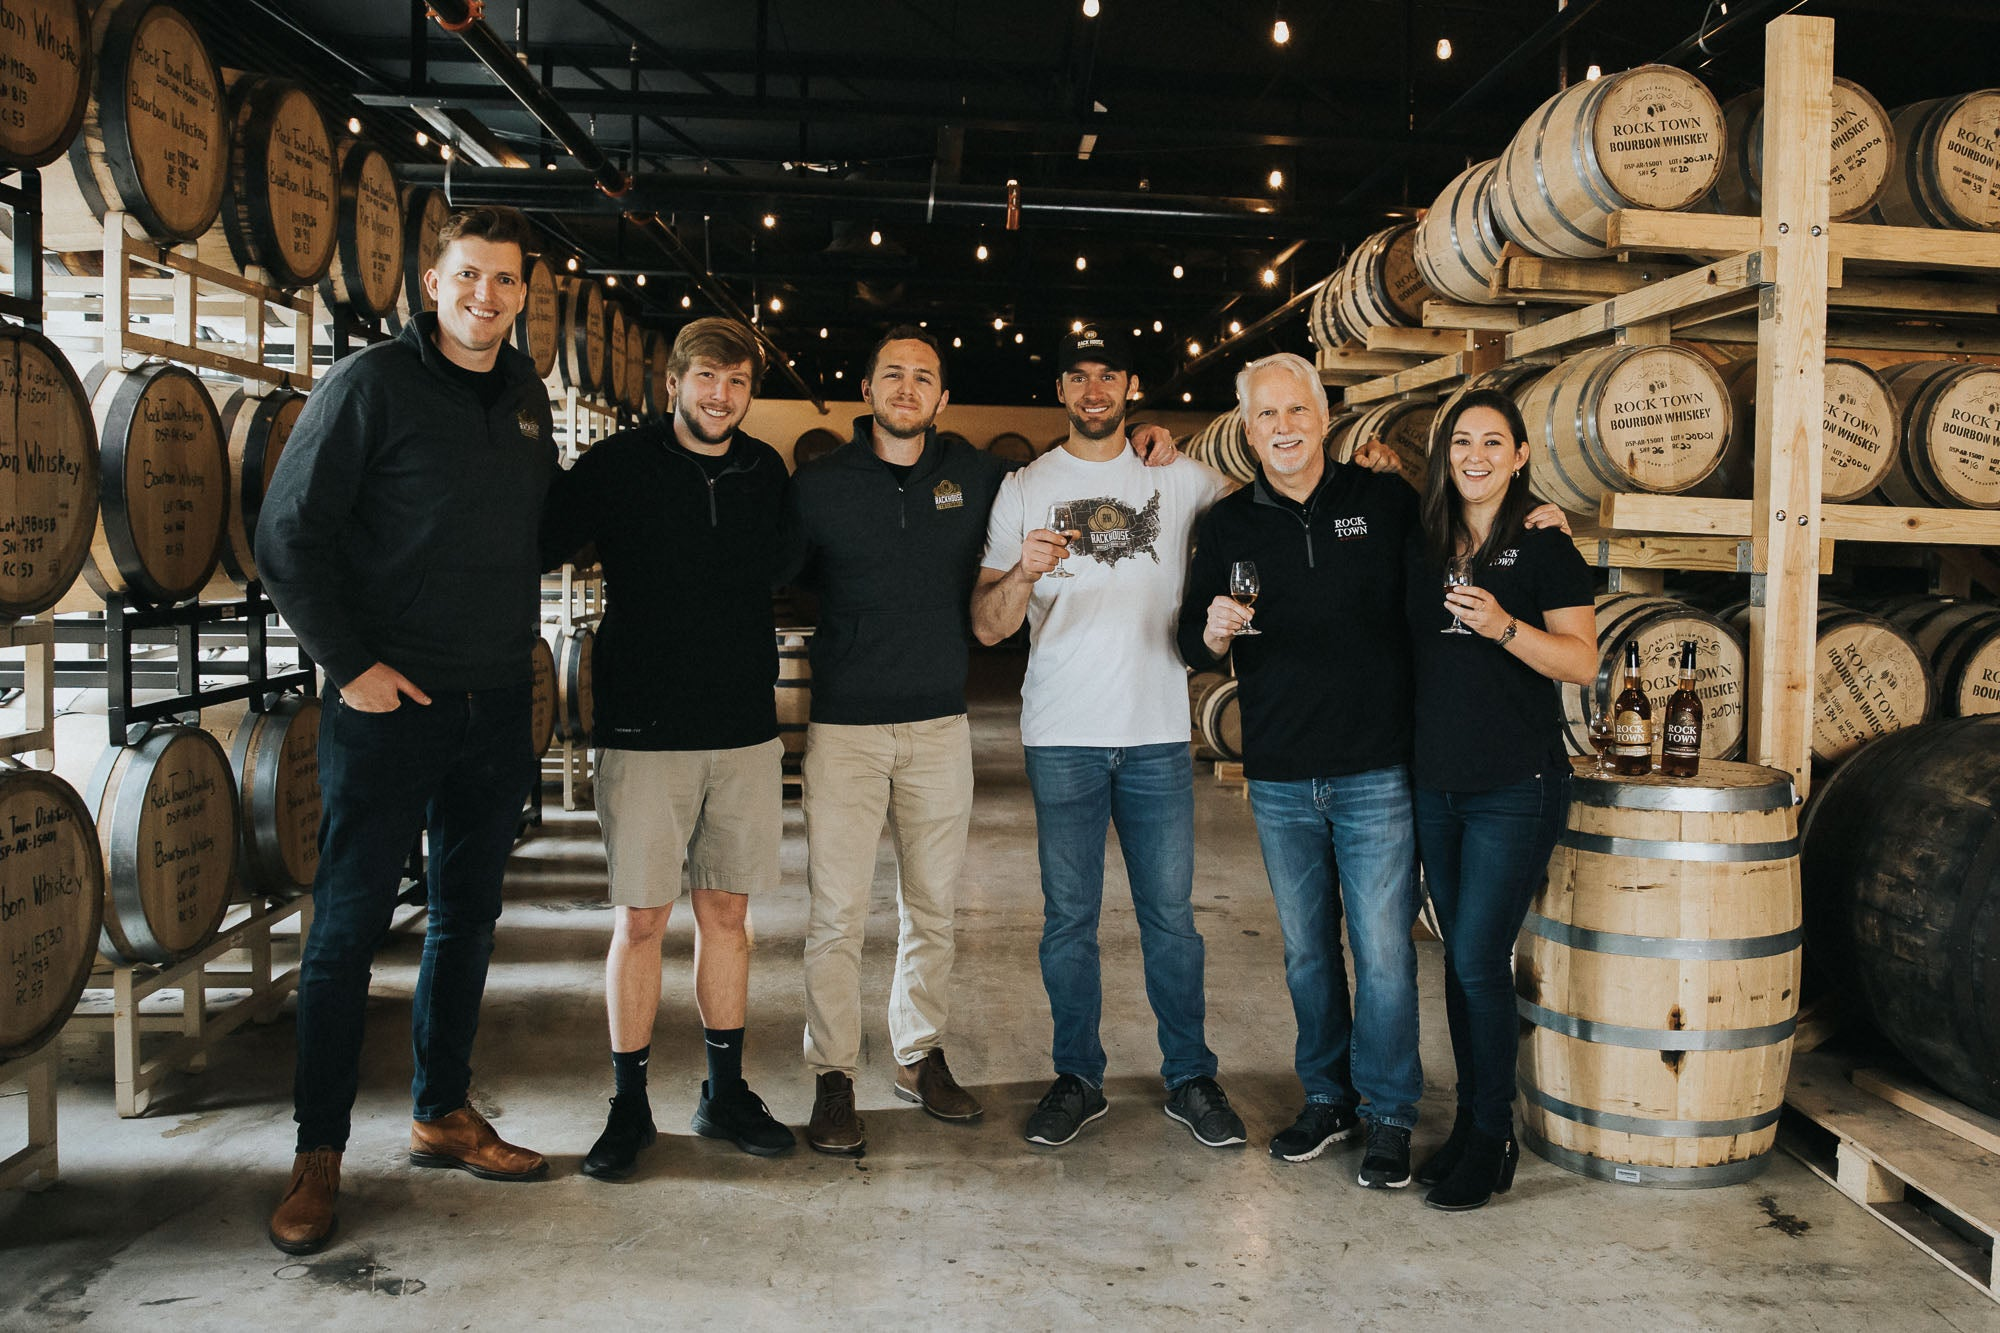 RackHouse WHiskey Club features Rock Town Distillery